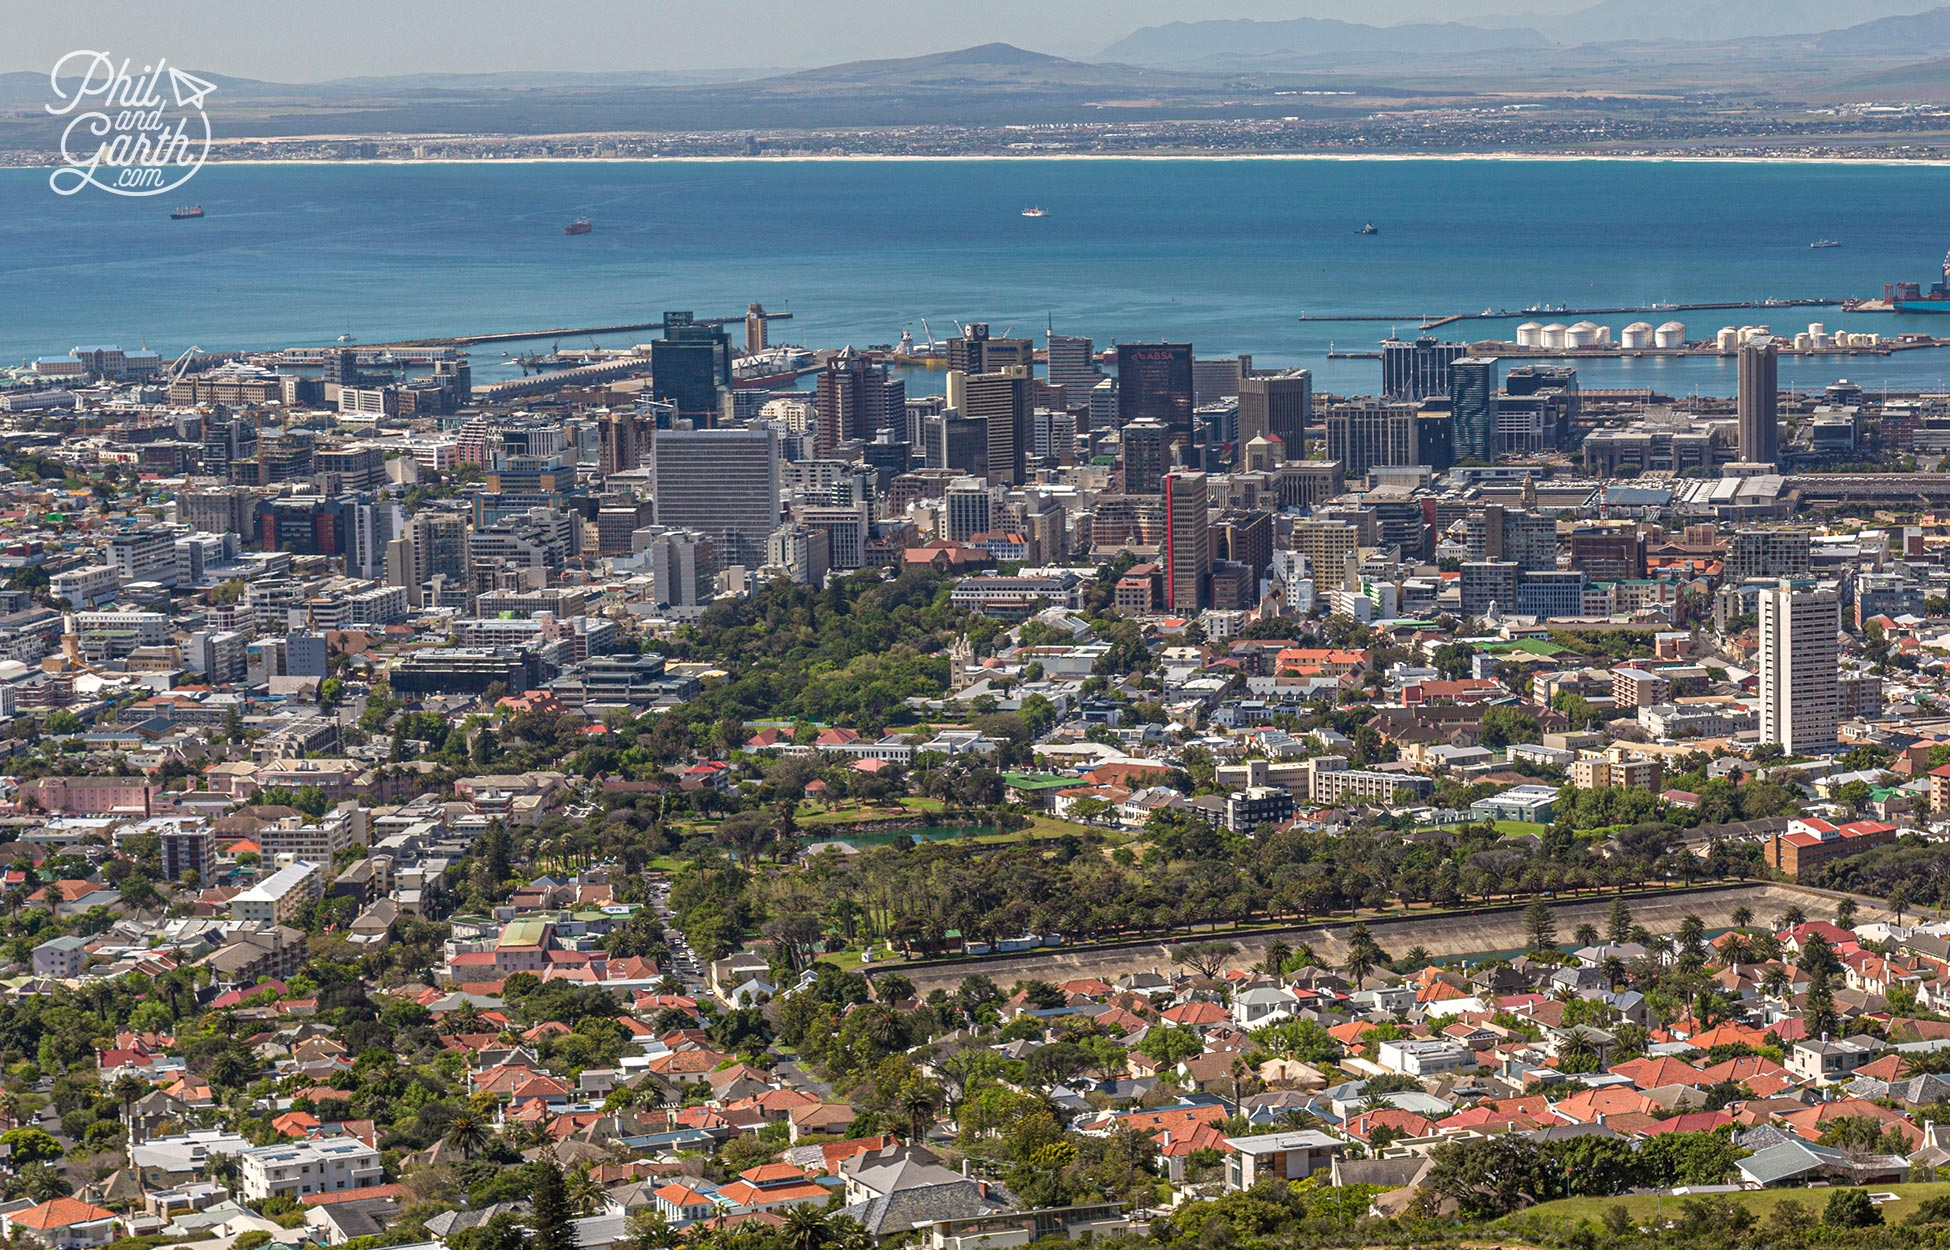 Cape Town is a BIG city made up of lots of small neighbourhoods